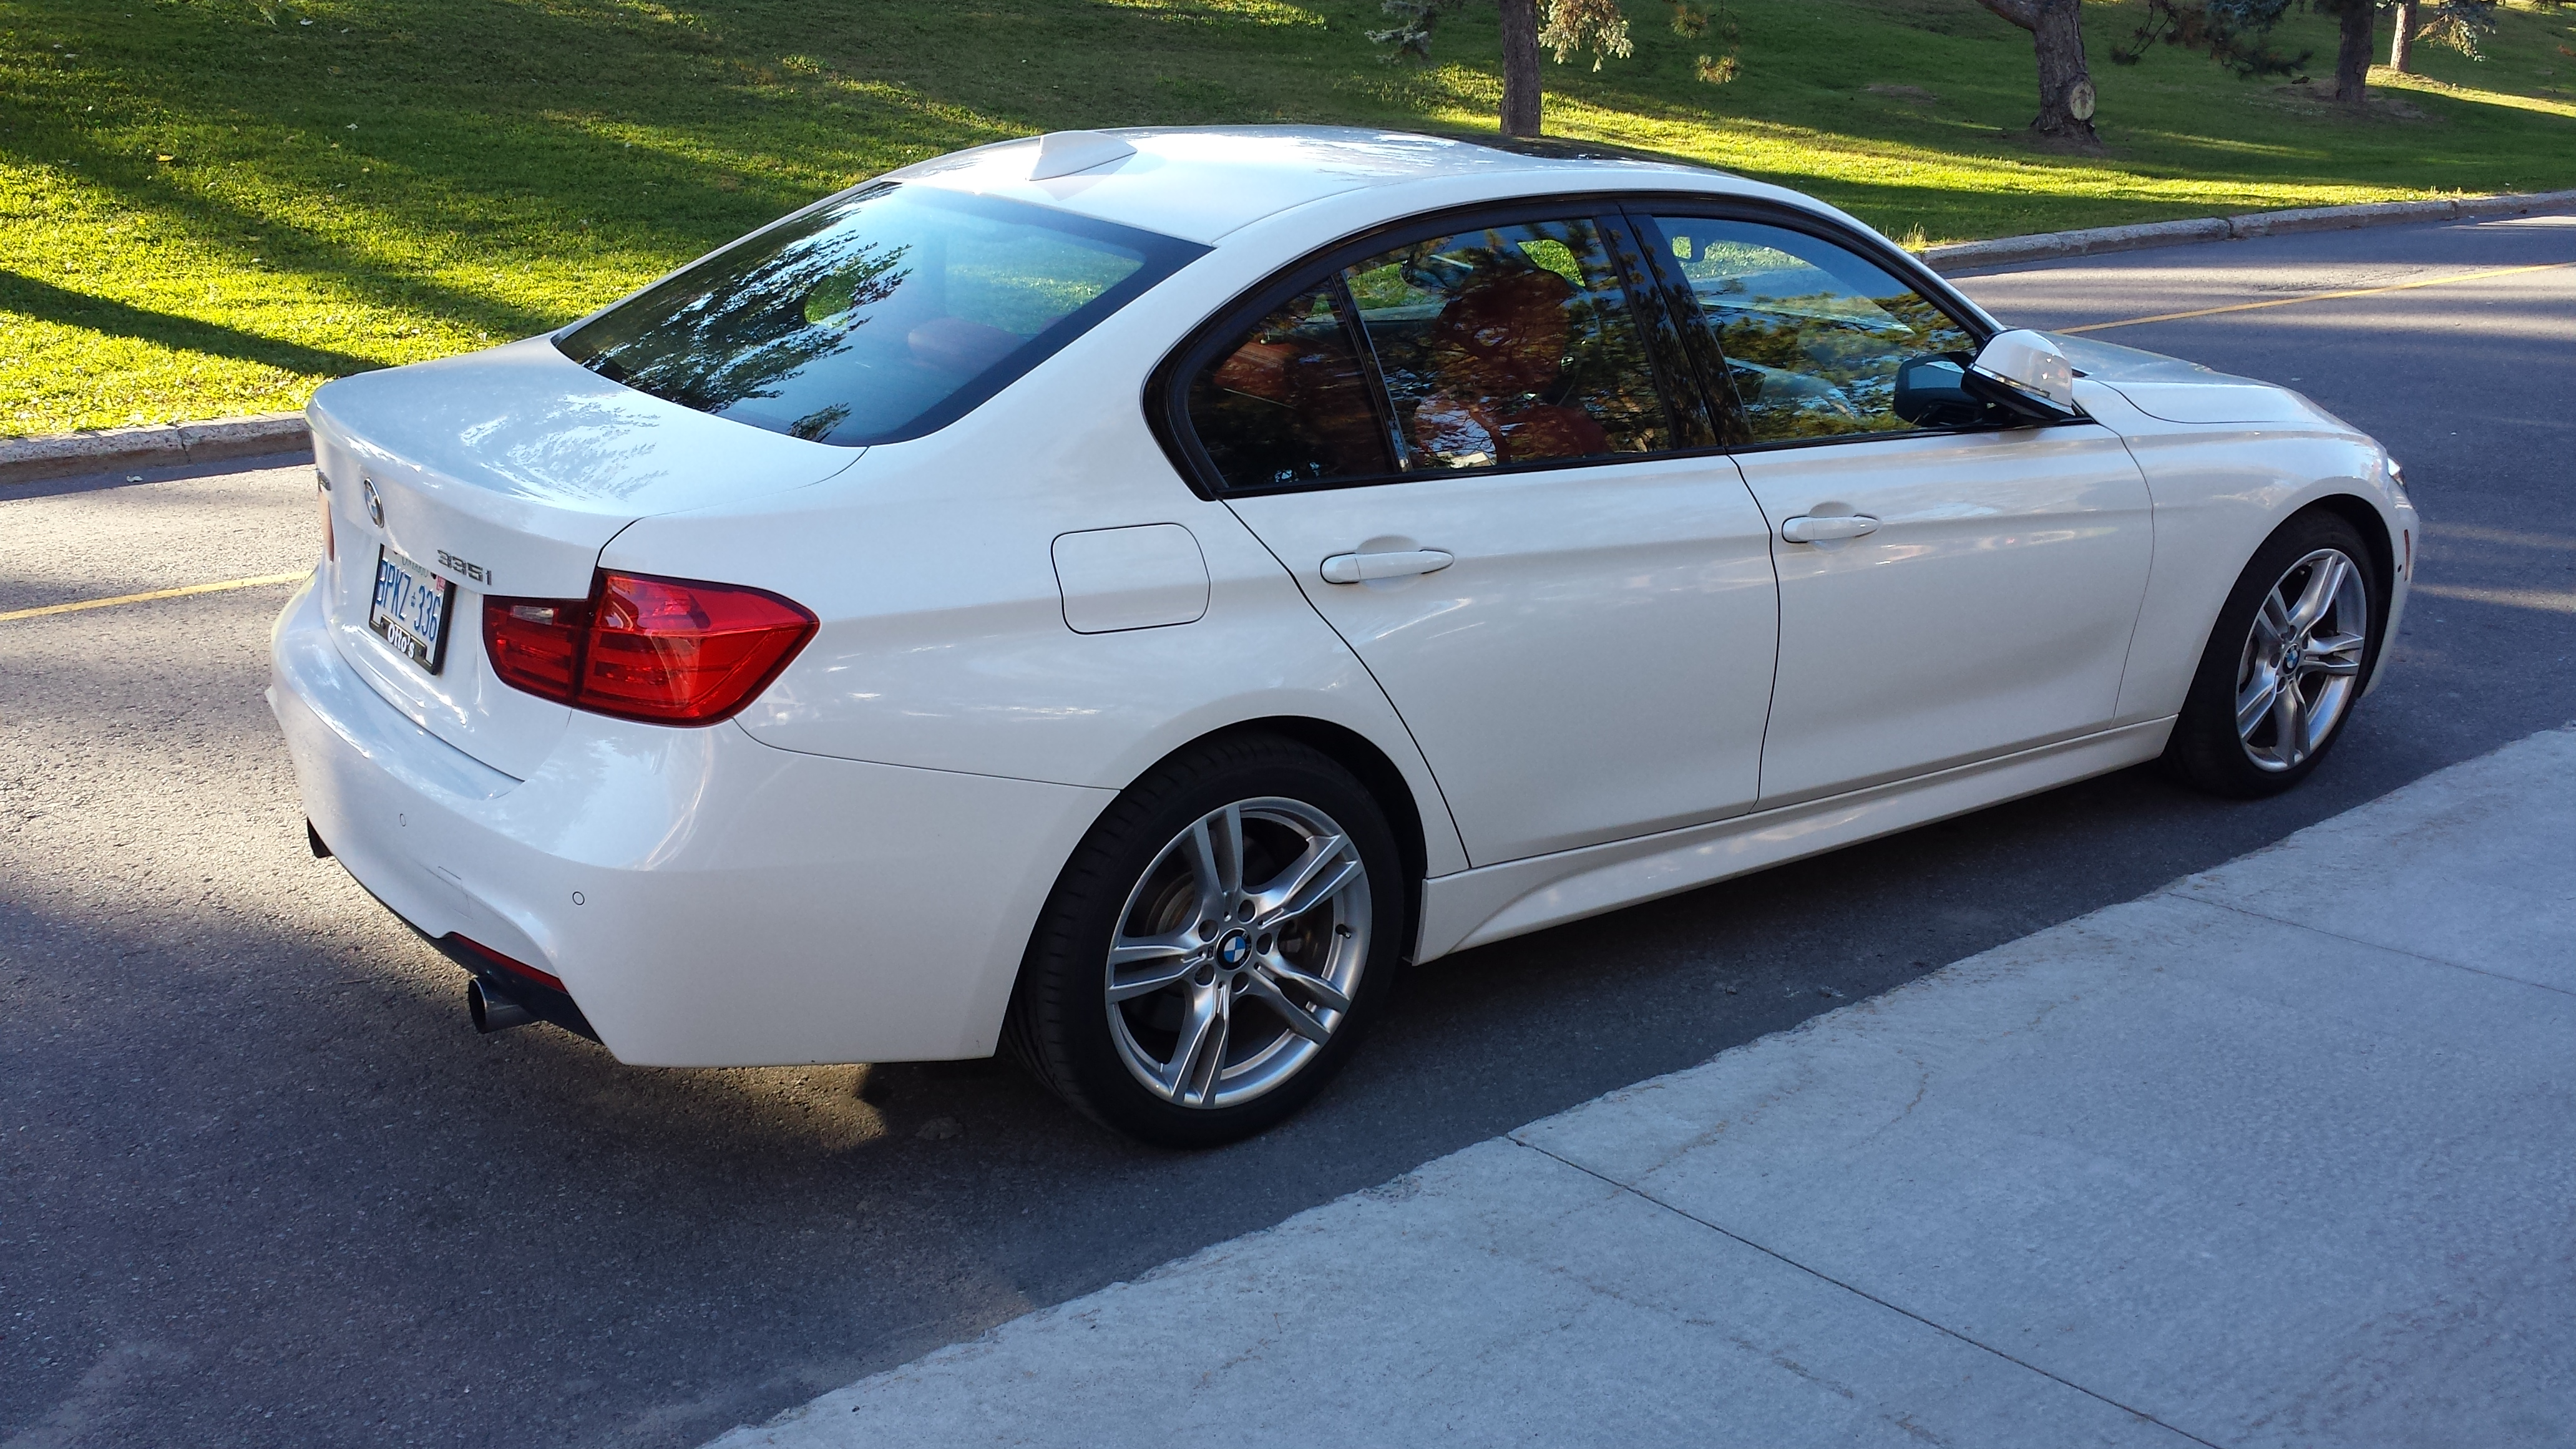 FileWhite BMW 335i XDrive F30